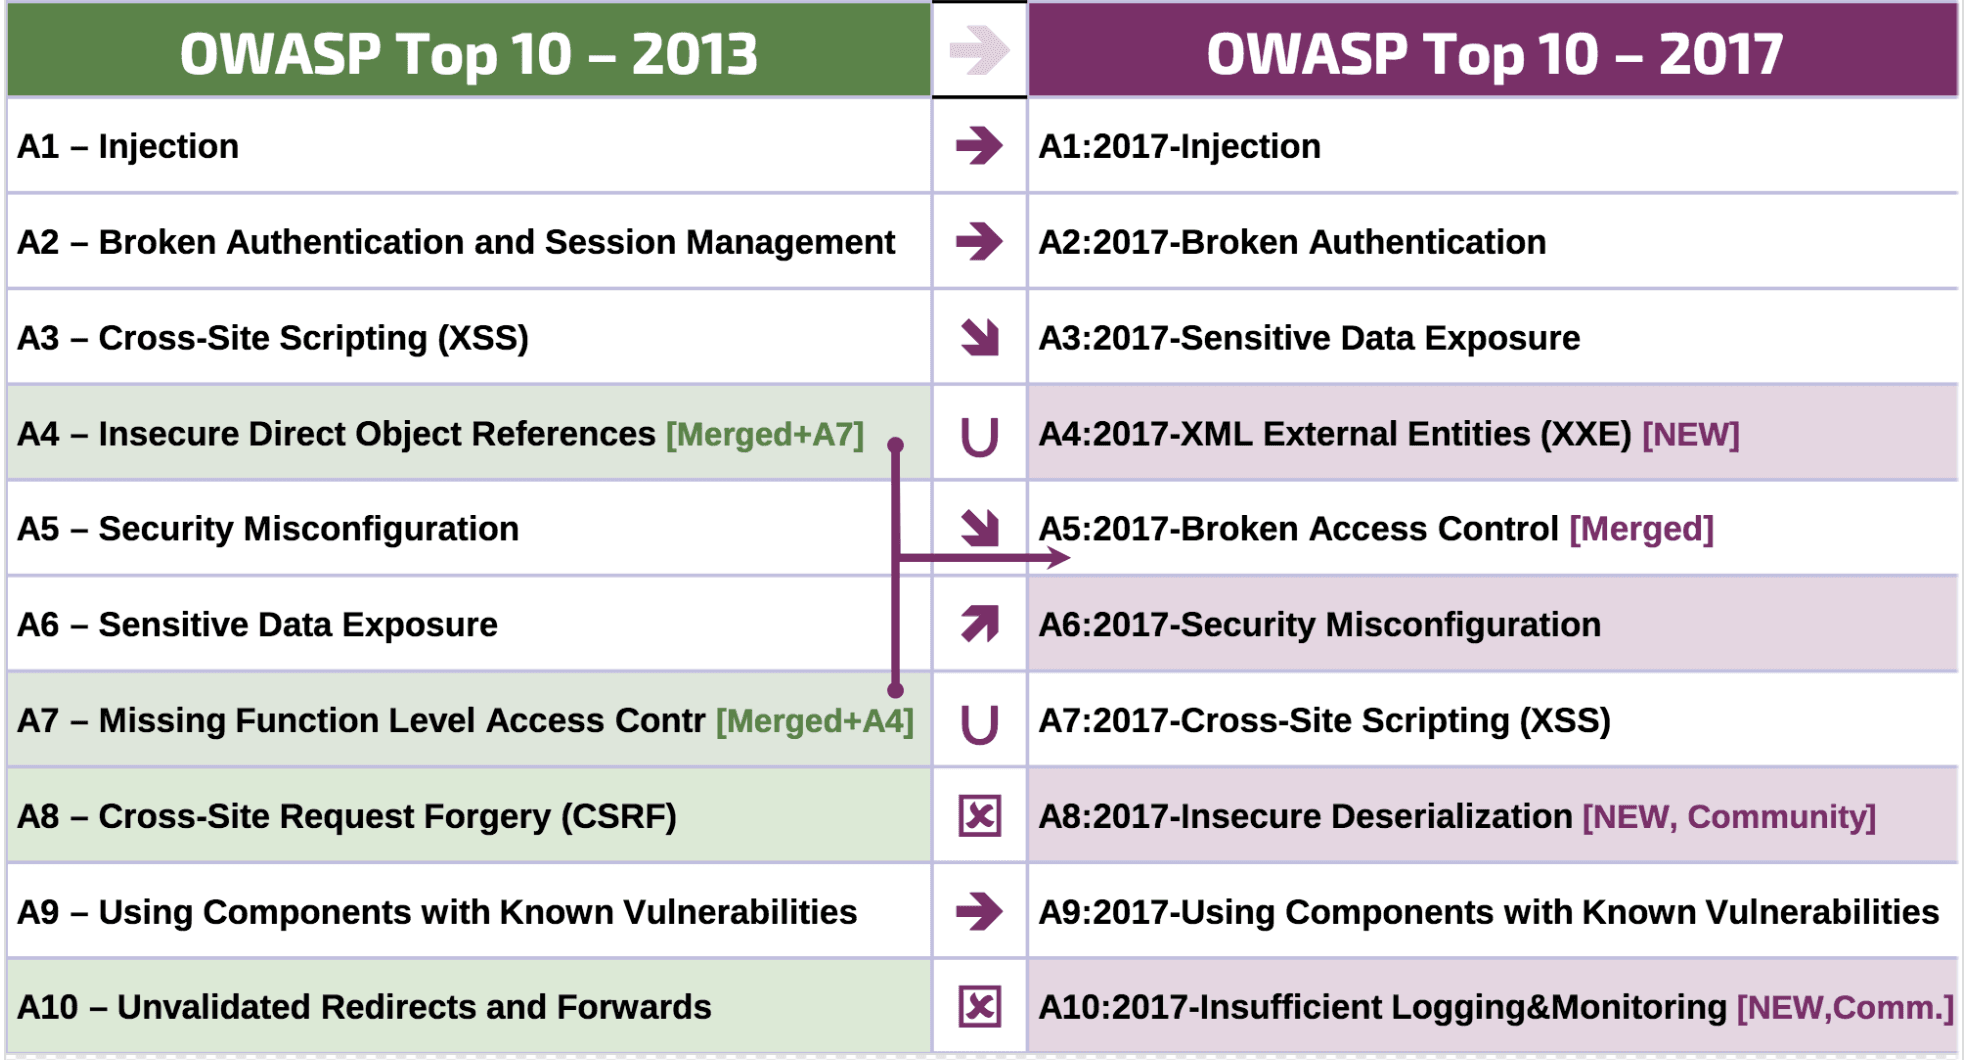 New OWASP Top 10 is finally here, injections still dominate